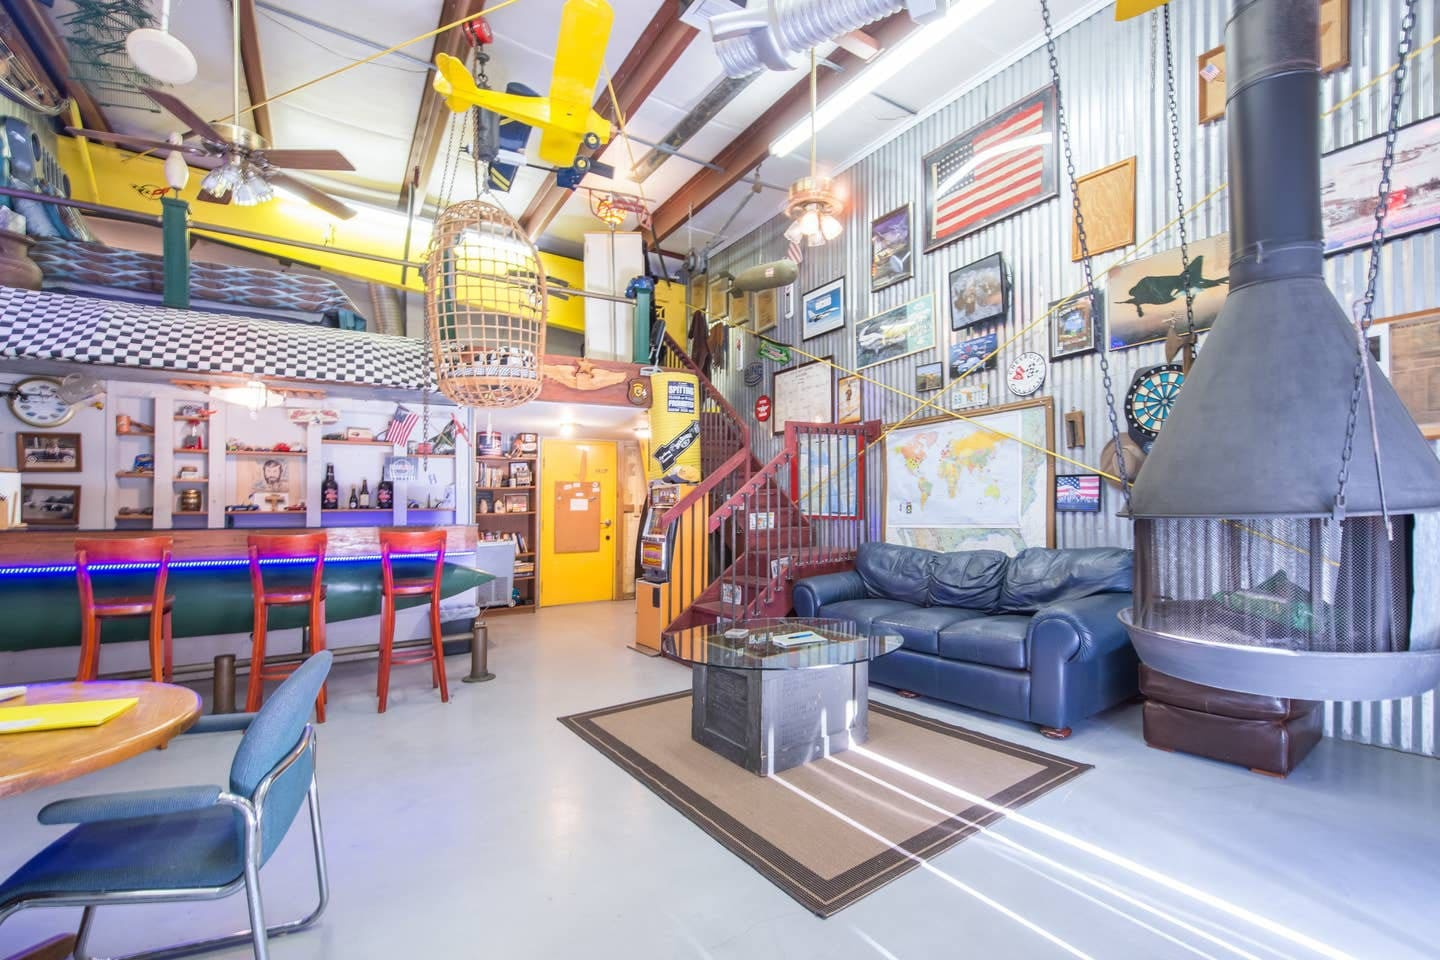 The Mancave is another Airbnb venue available on property. https://www.airbnb.com/rooms/7214350?s=67&shared_item_type=1&virality_entry_point=1&sharer_id=13885996